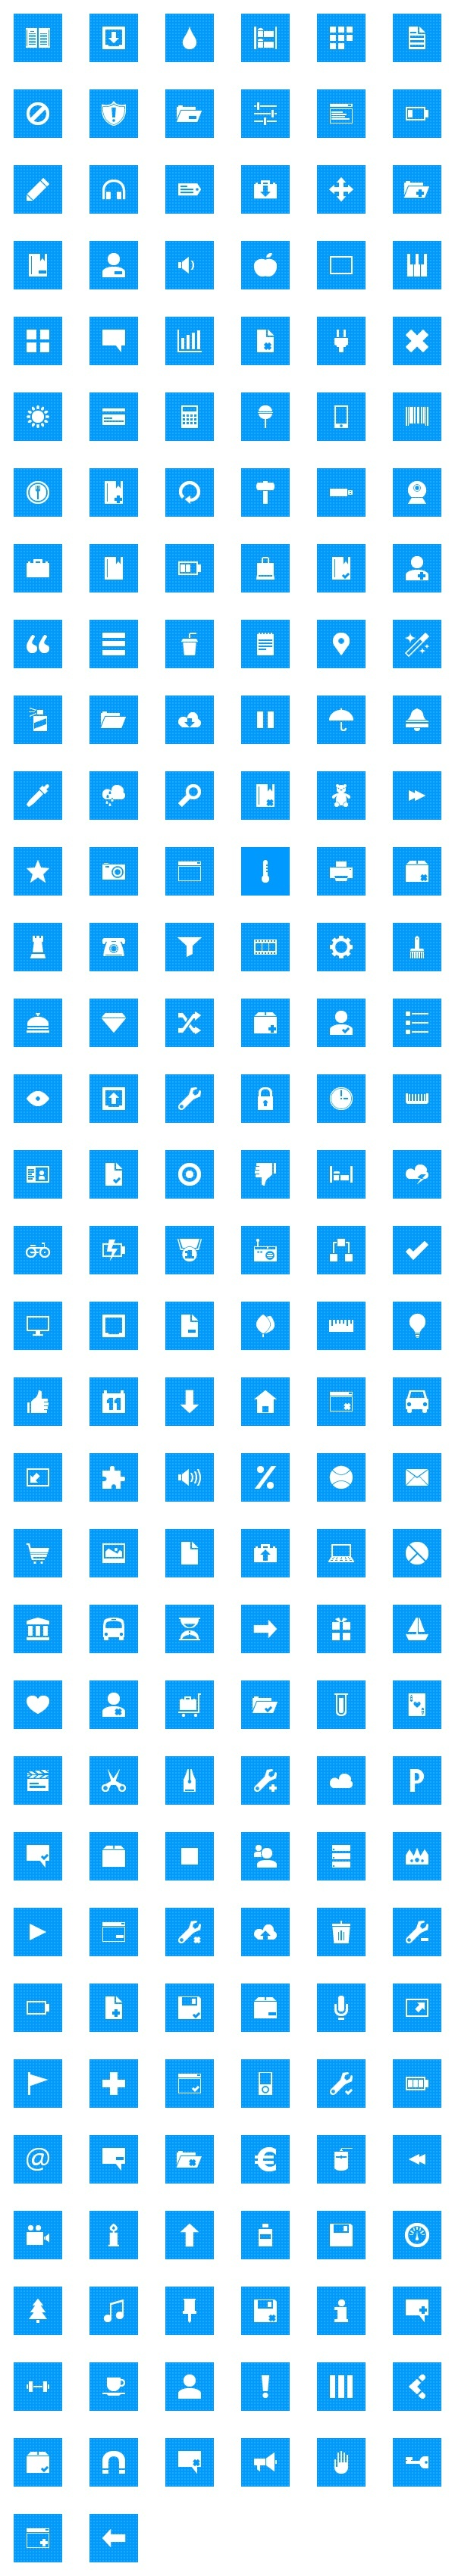 """The newest Metro styled pixel icon set from DryIcons.com, called """"Pixelistica Blue""""."""